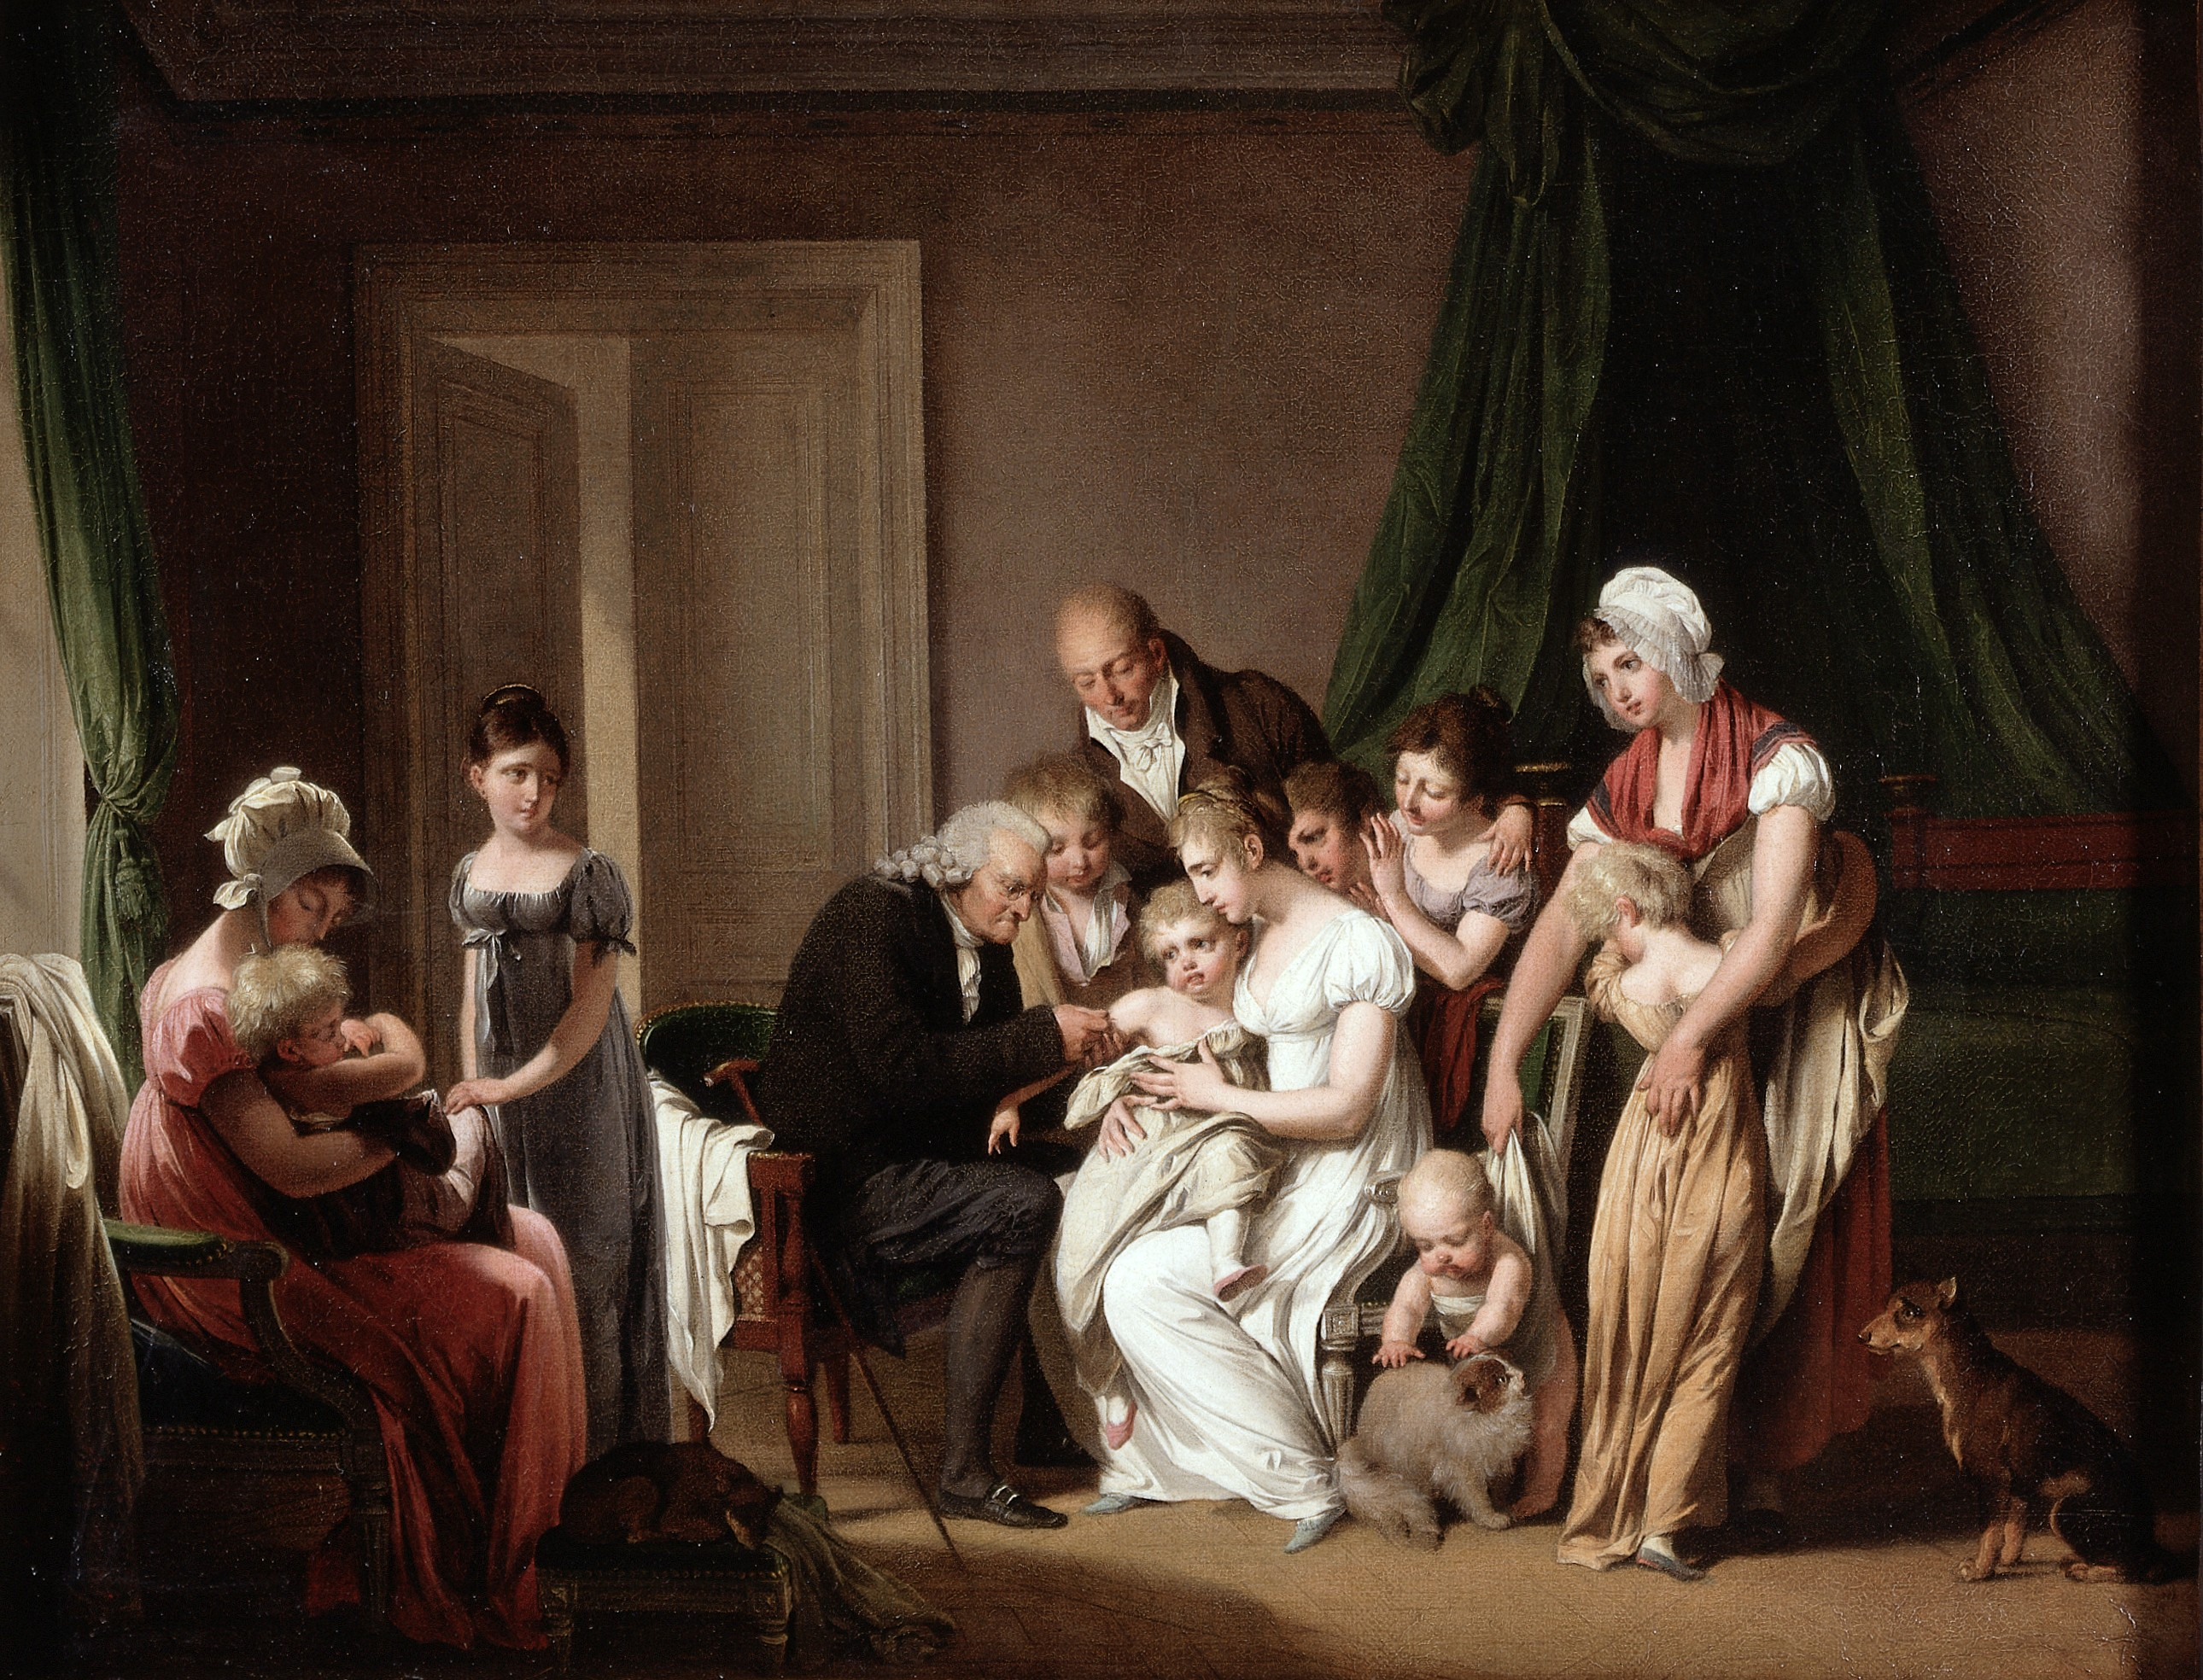 an 18th century painting of a man vaccinating a child held in a woman's arms while the family looks on